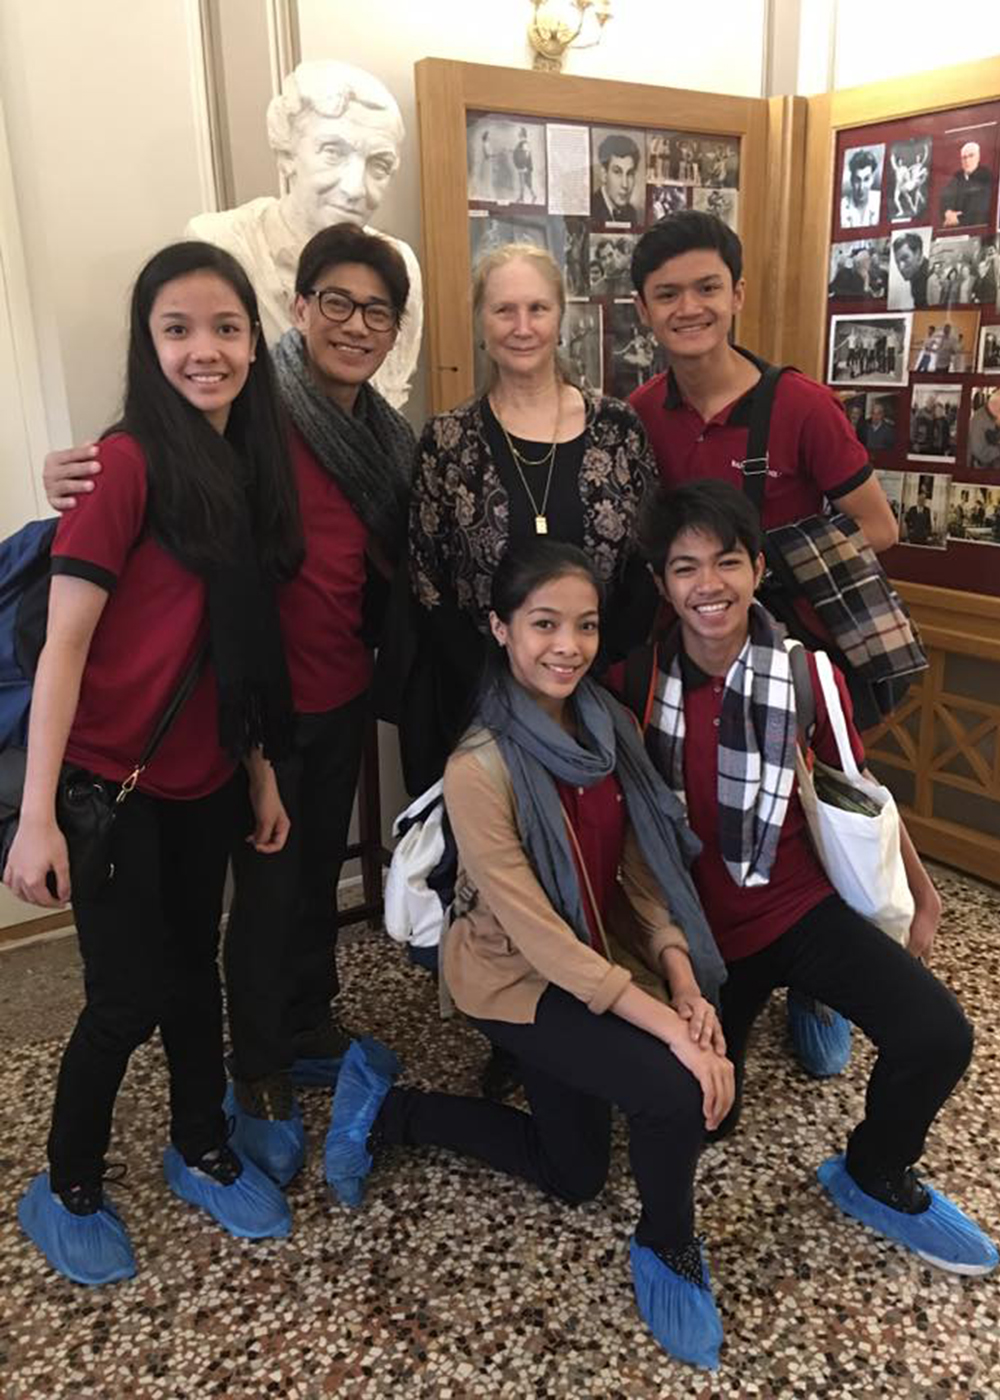 Alvin's most memorable trip was to Russia in 2016 as he and his fellow BM delegates got to meet Russian dance legend Tatiana Alexandrovna Udalenkova.